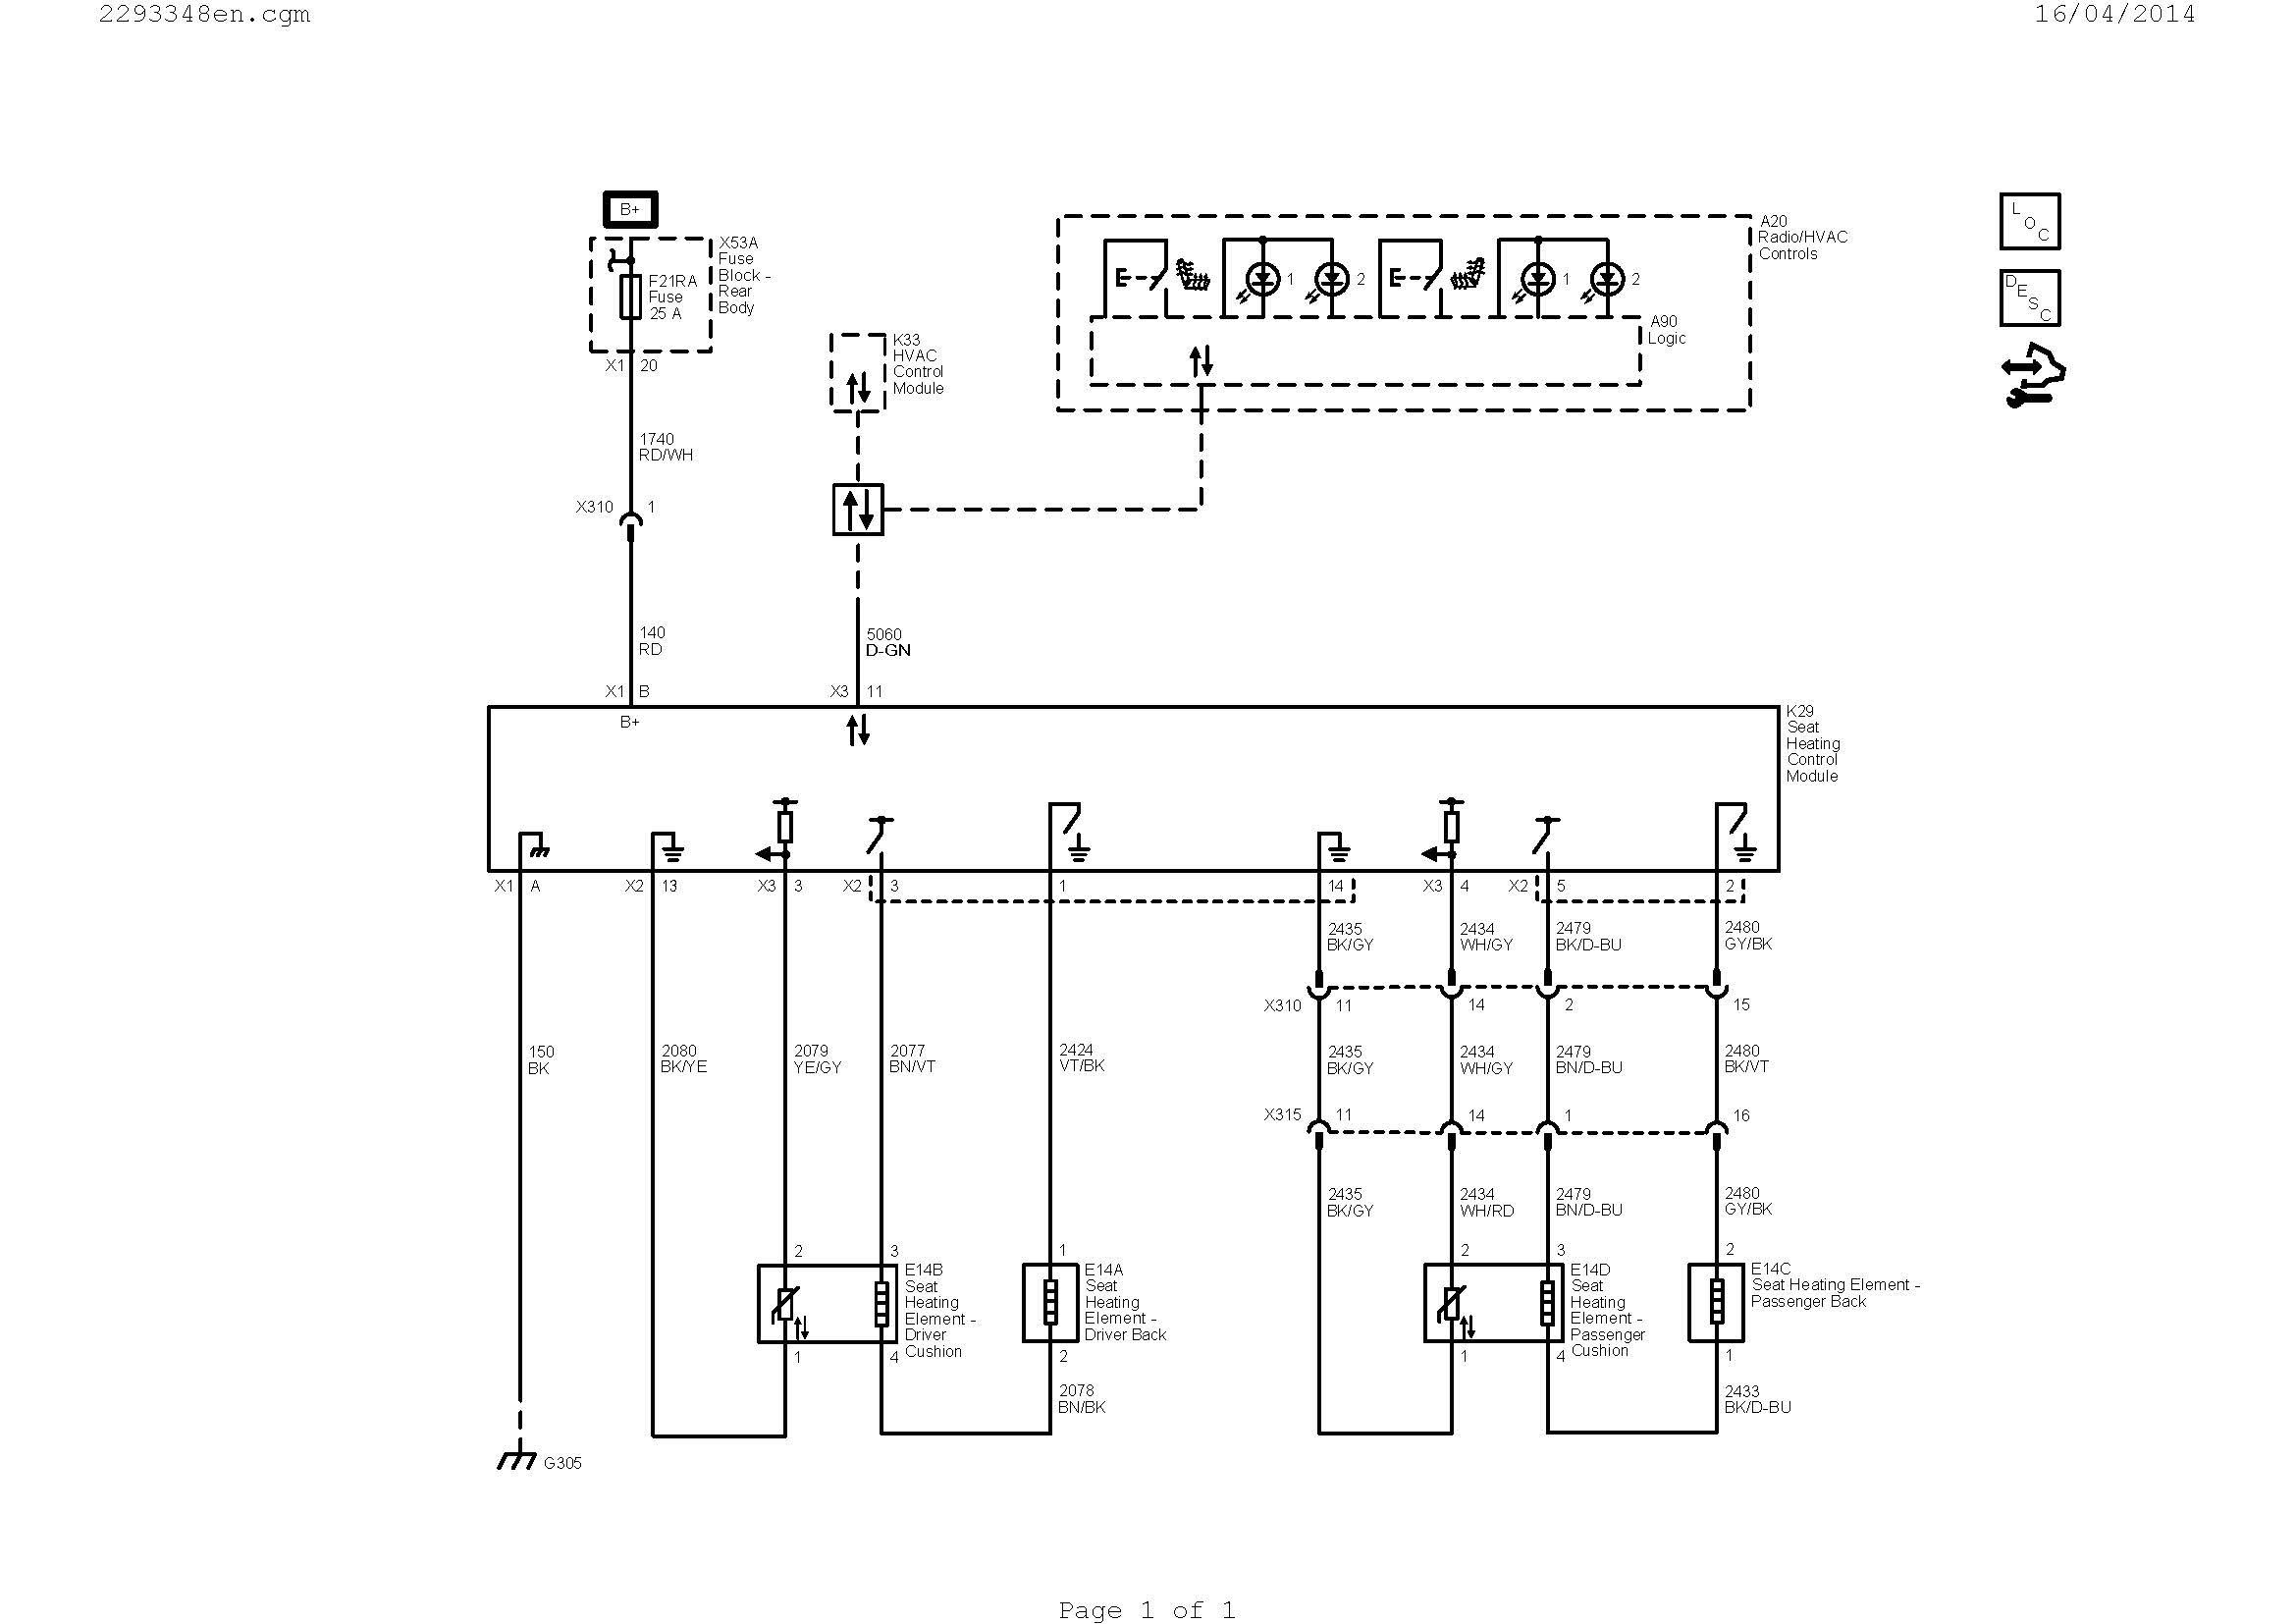 Residential Air Conditioner Wiring Diagram Sample